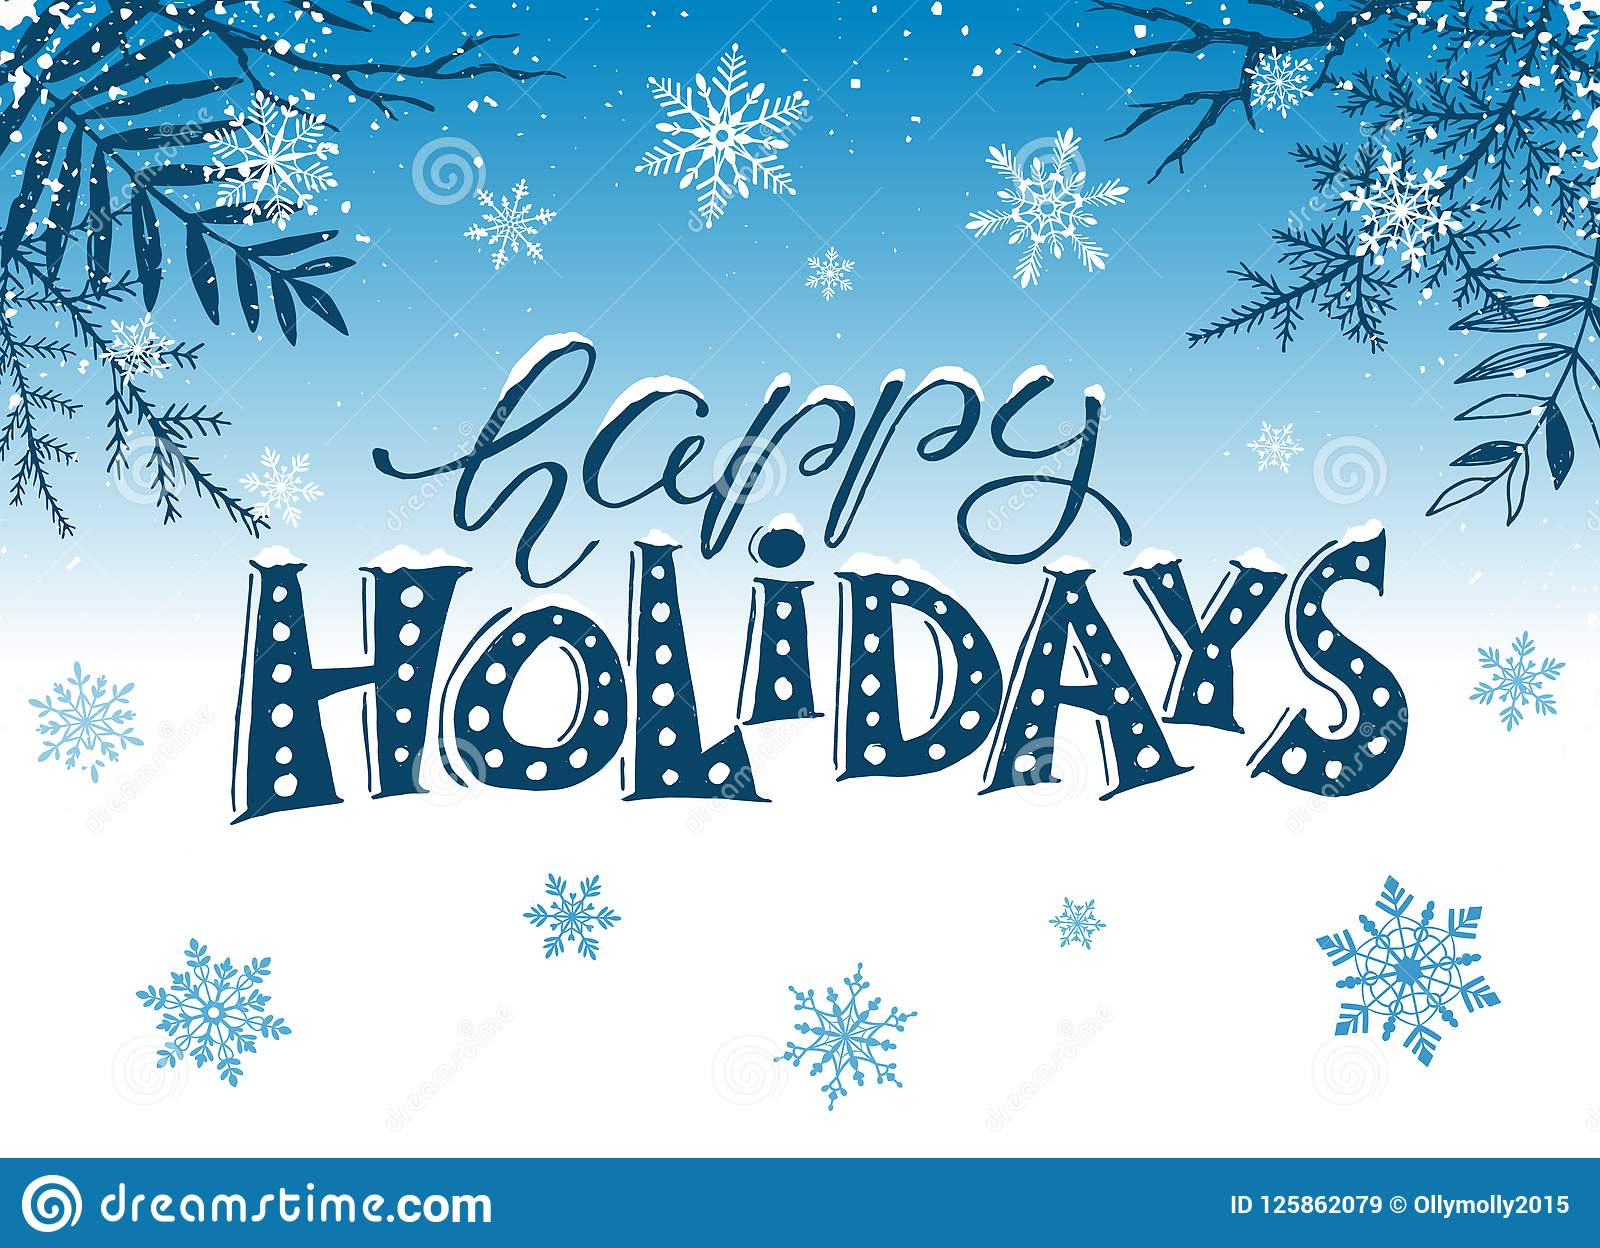 happy holidays greeting card stock vector